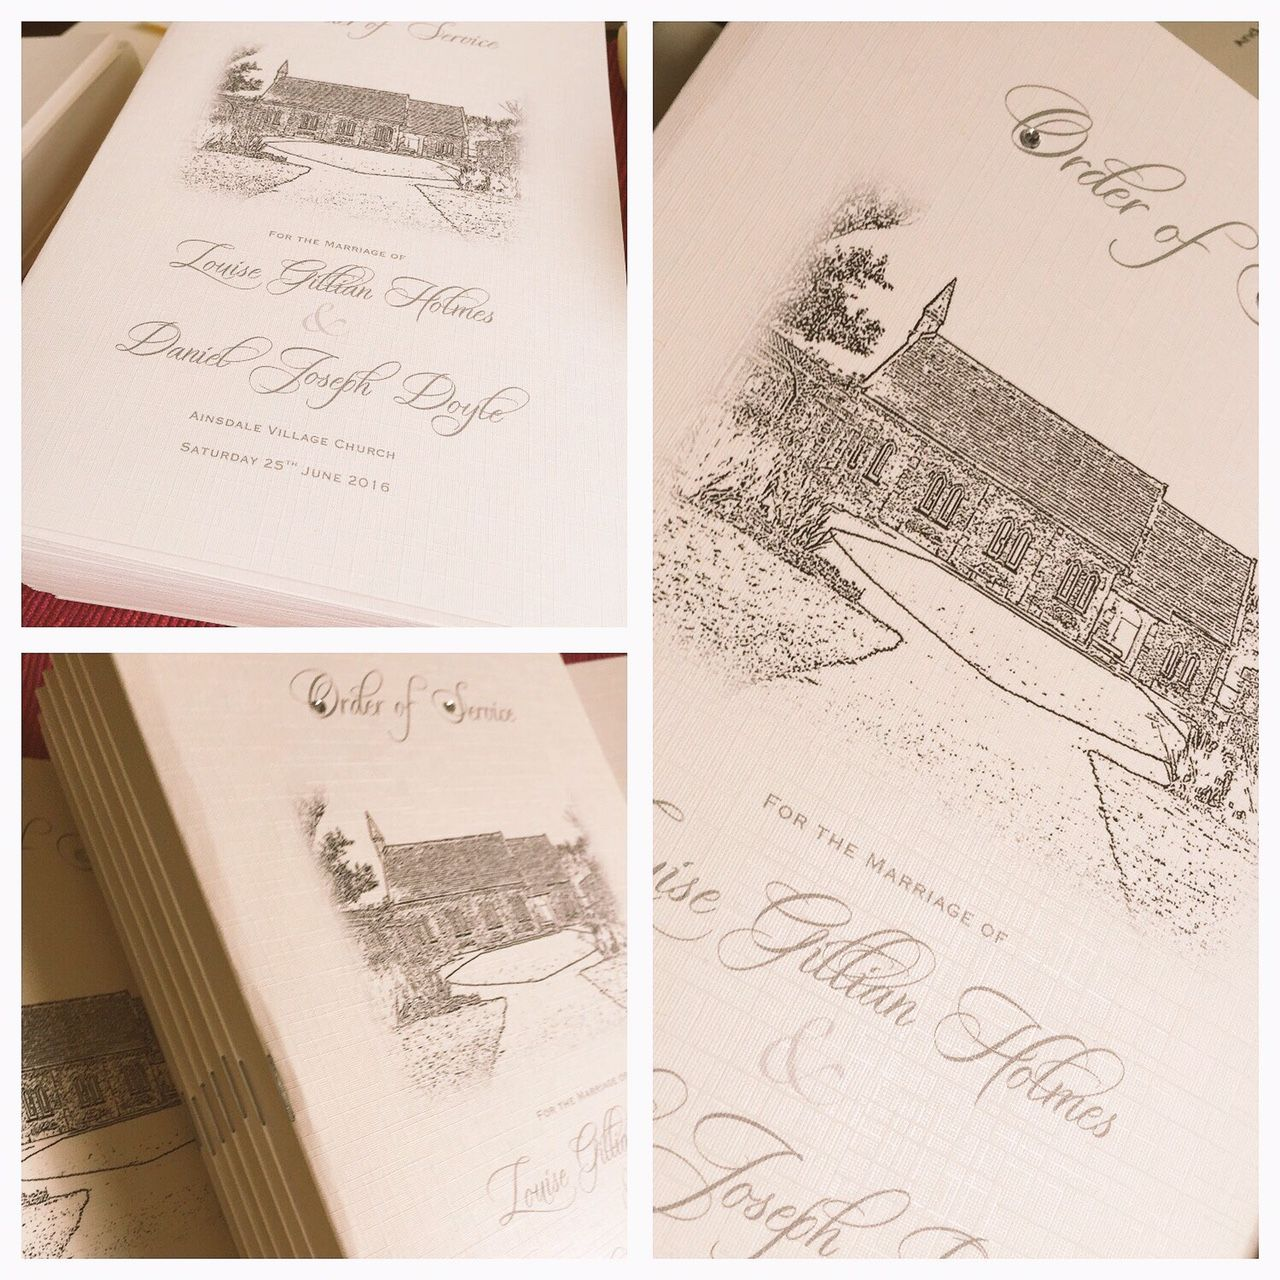 Order of services books for wedding with church image